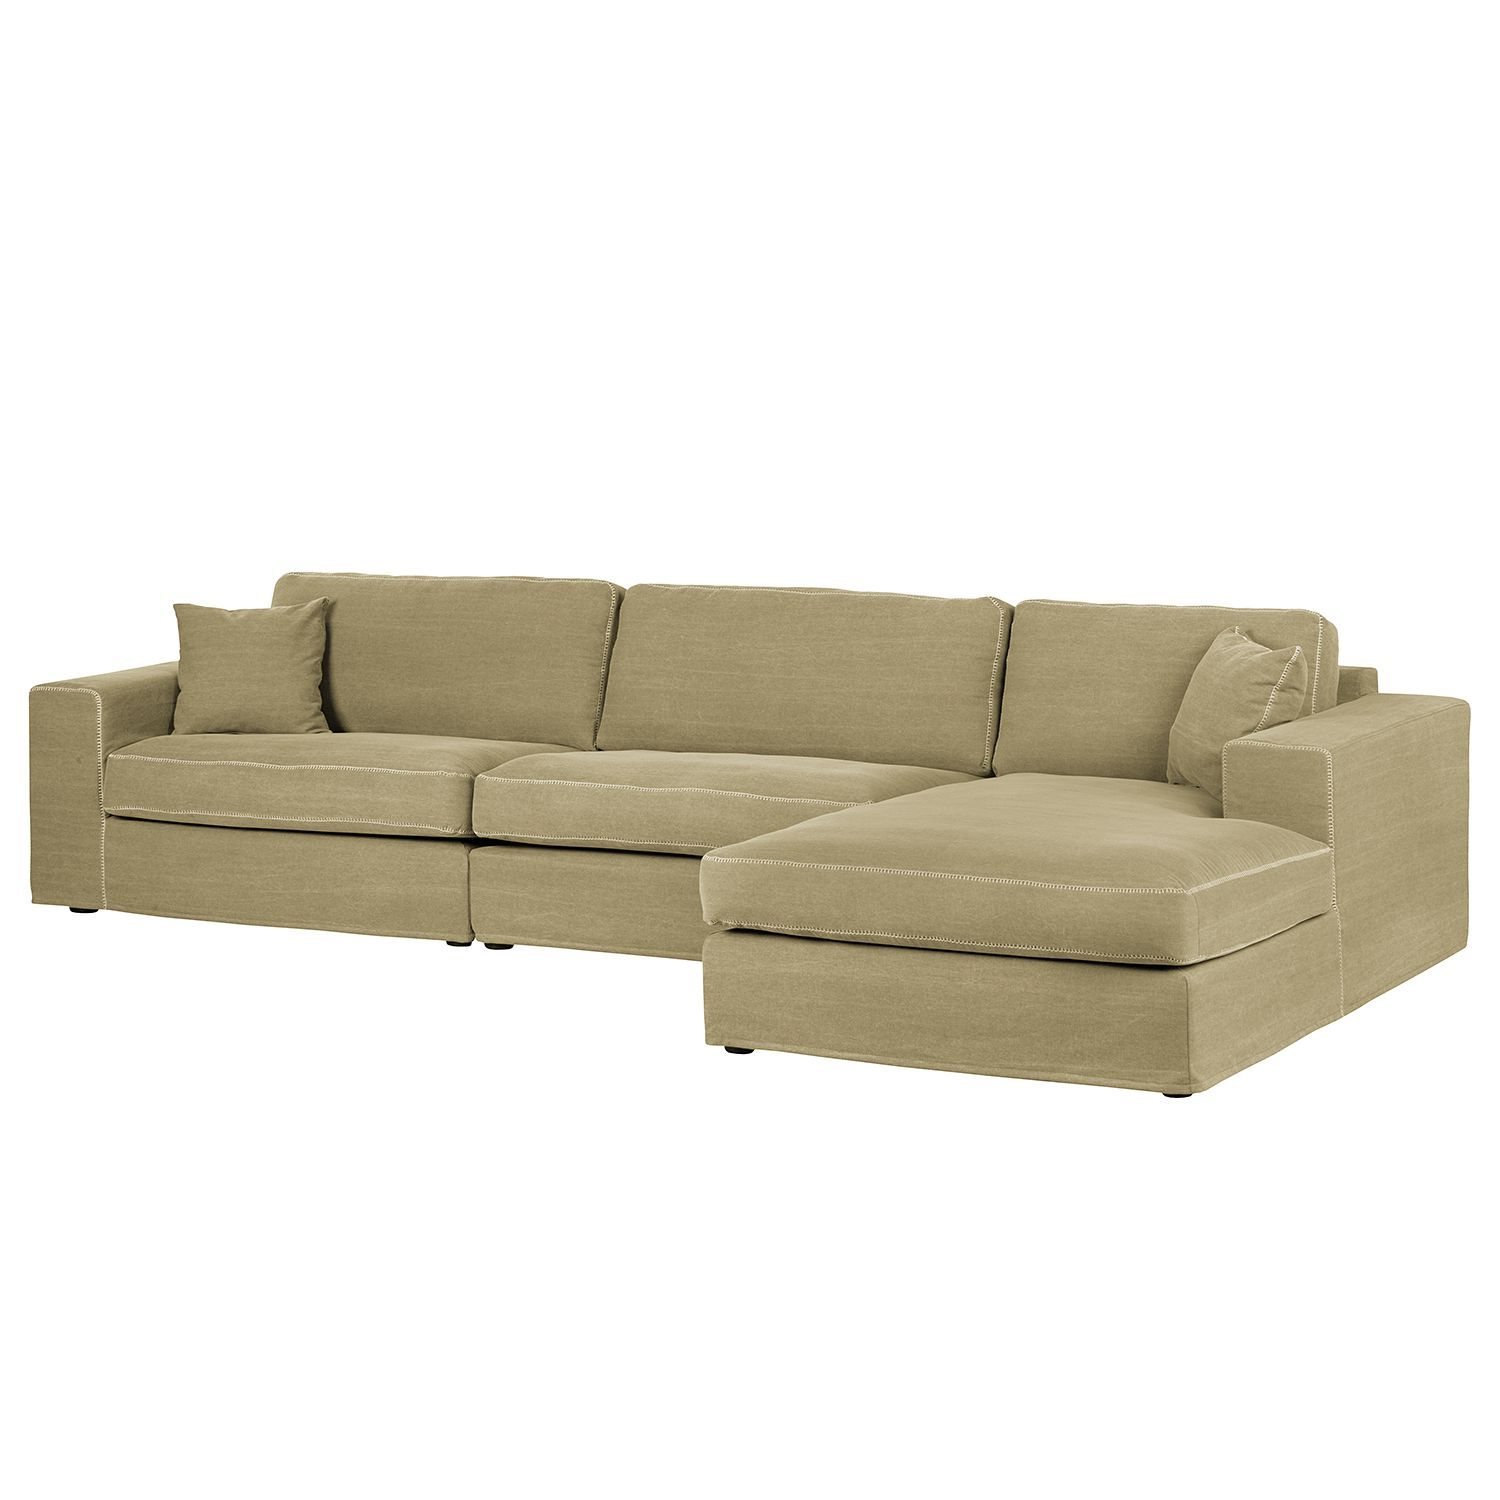 Eckcouch Taupe Pin By Ladendirekt On Sofas Couches Couch Furniture Sofa